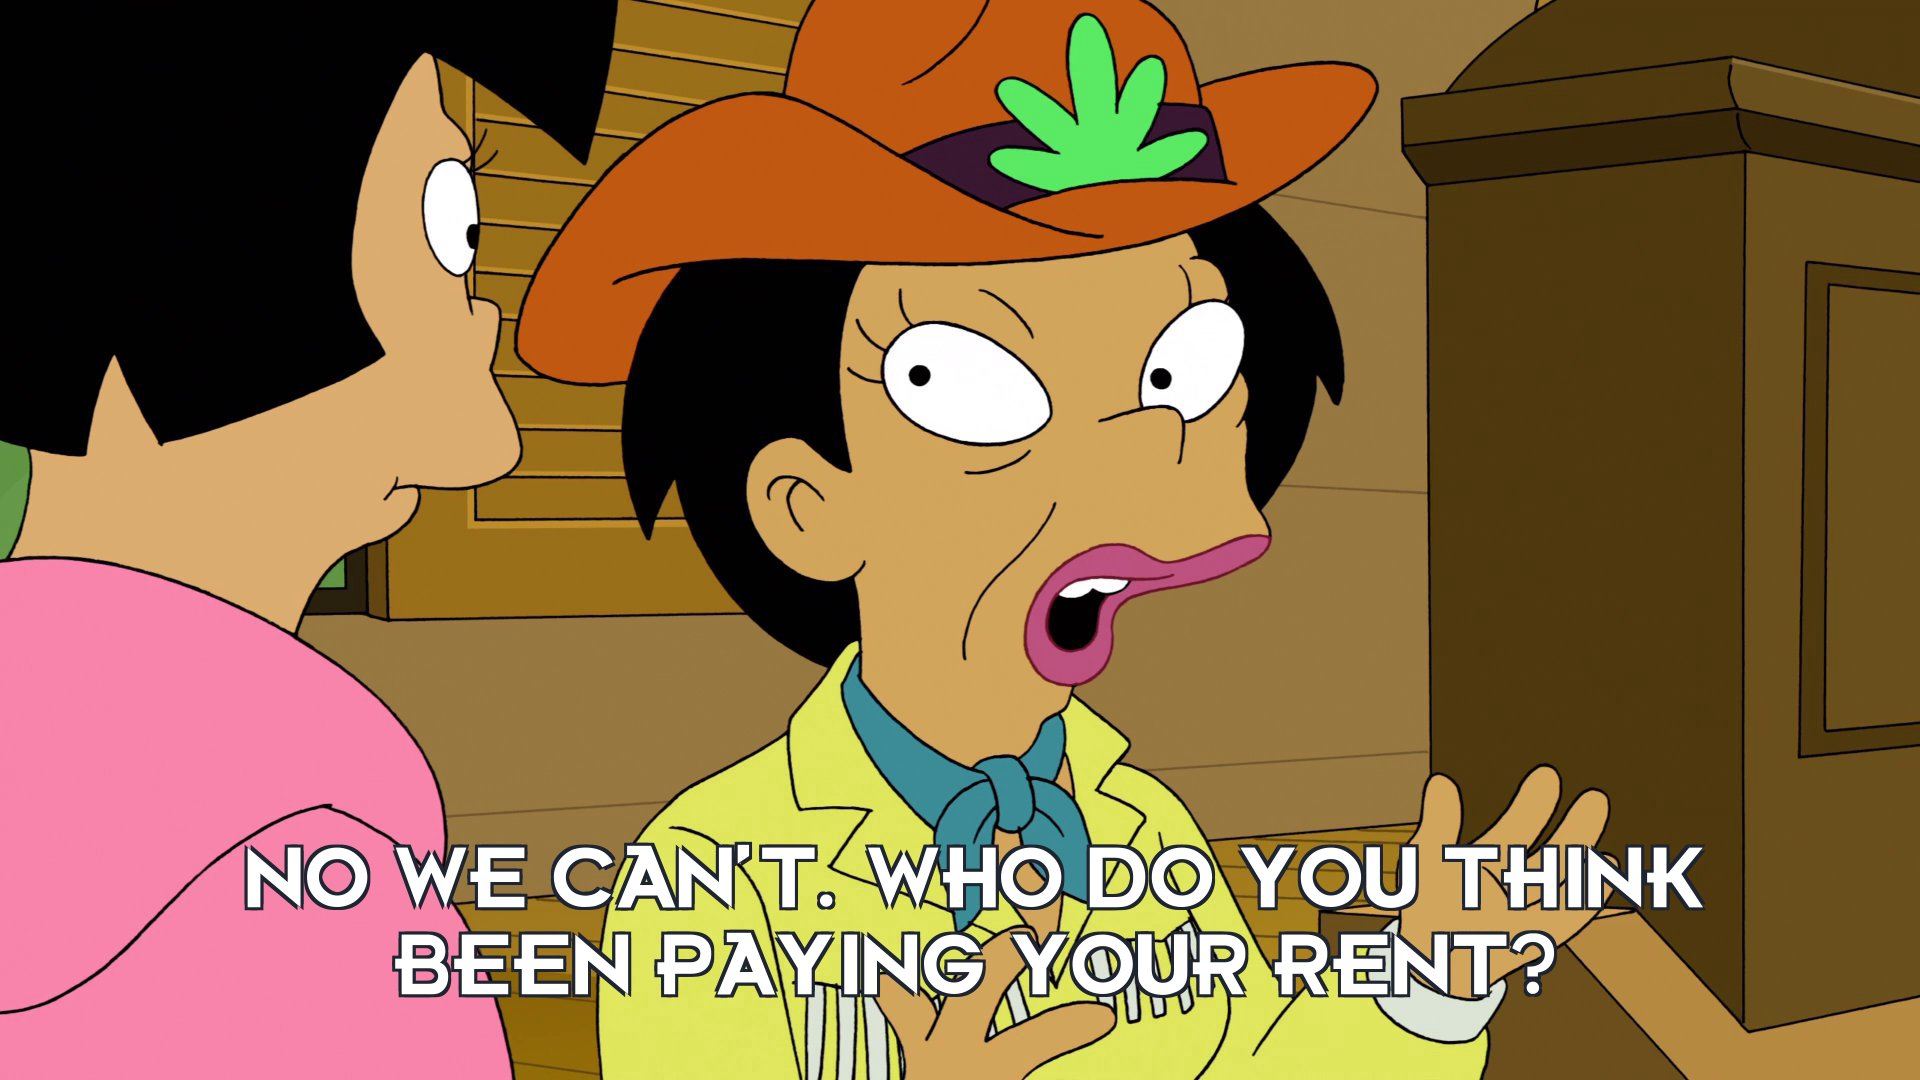 Inez Wong: No we can't. Who do you think been paying your rent?